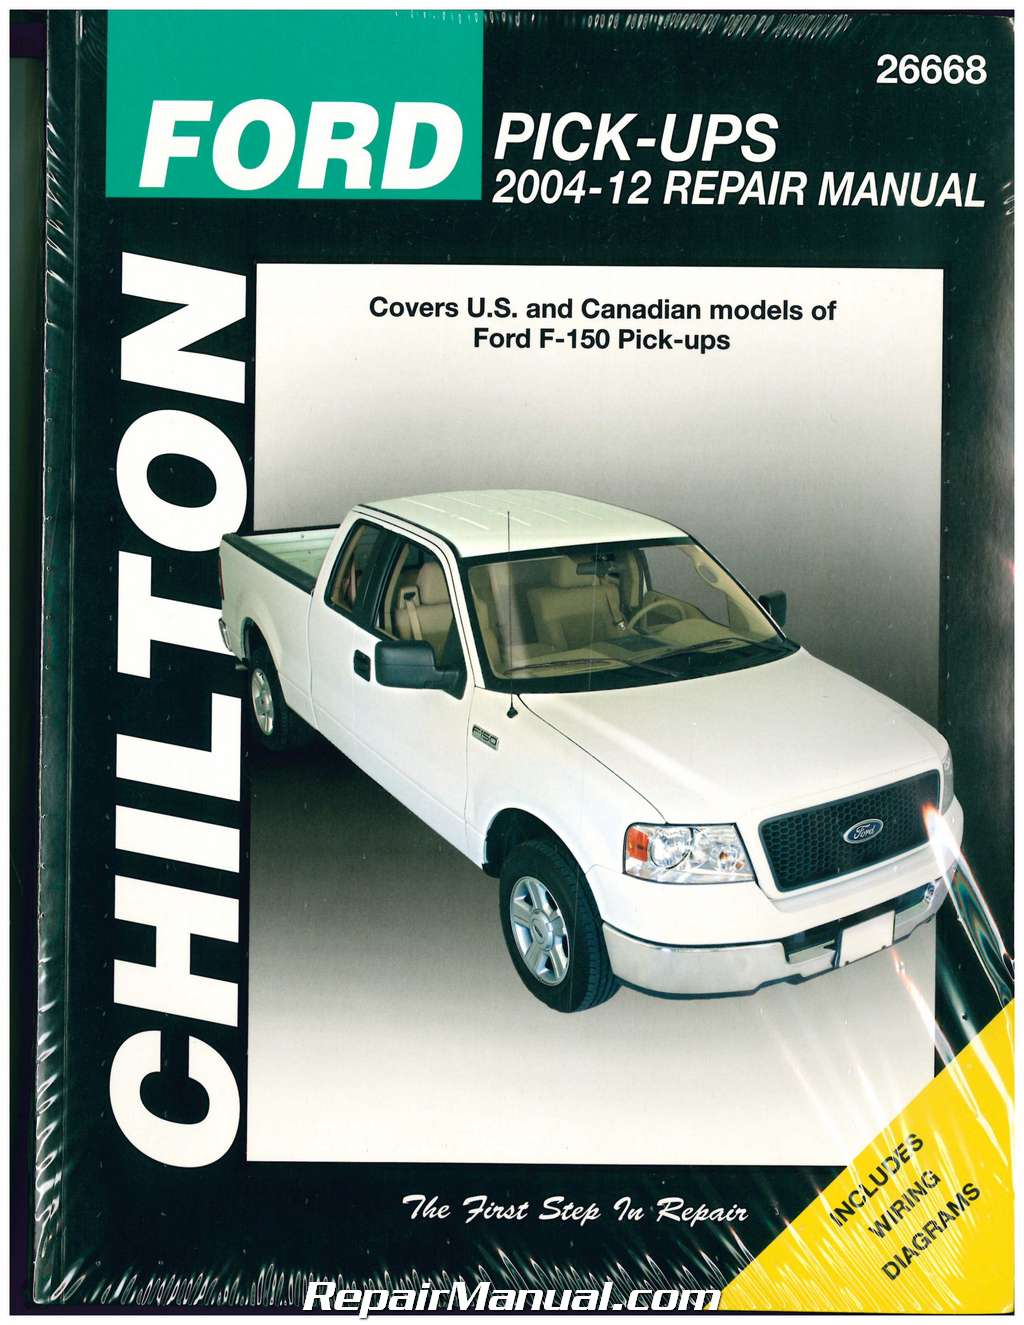 ford f series repair manual. Black Bedroom Furniture Sets. Home Design Ideas